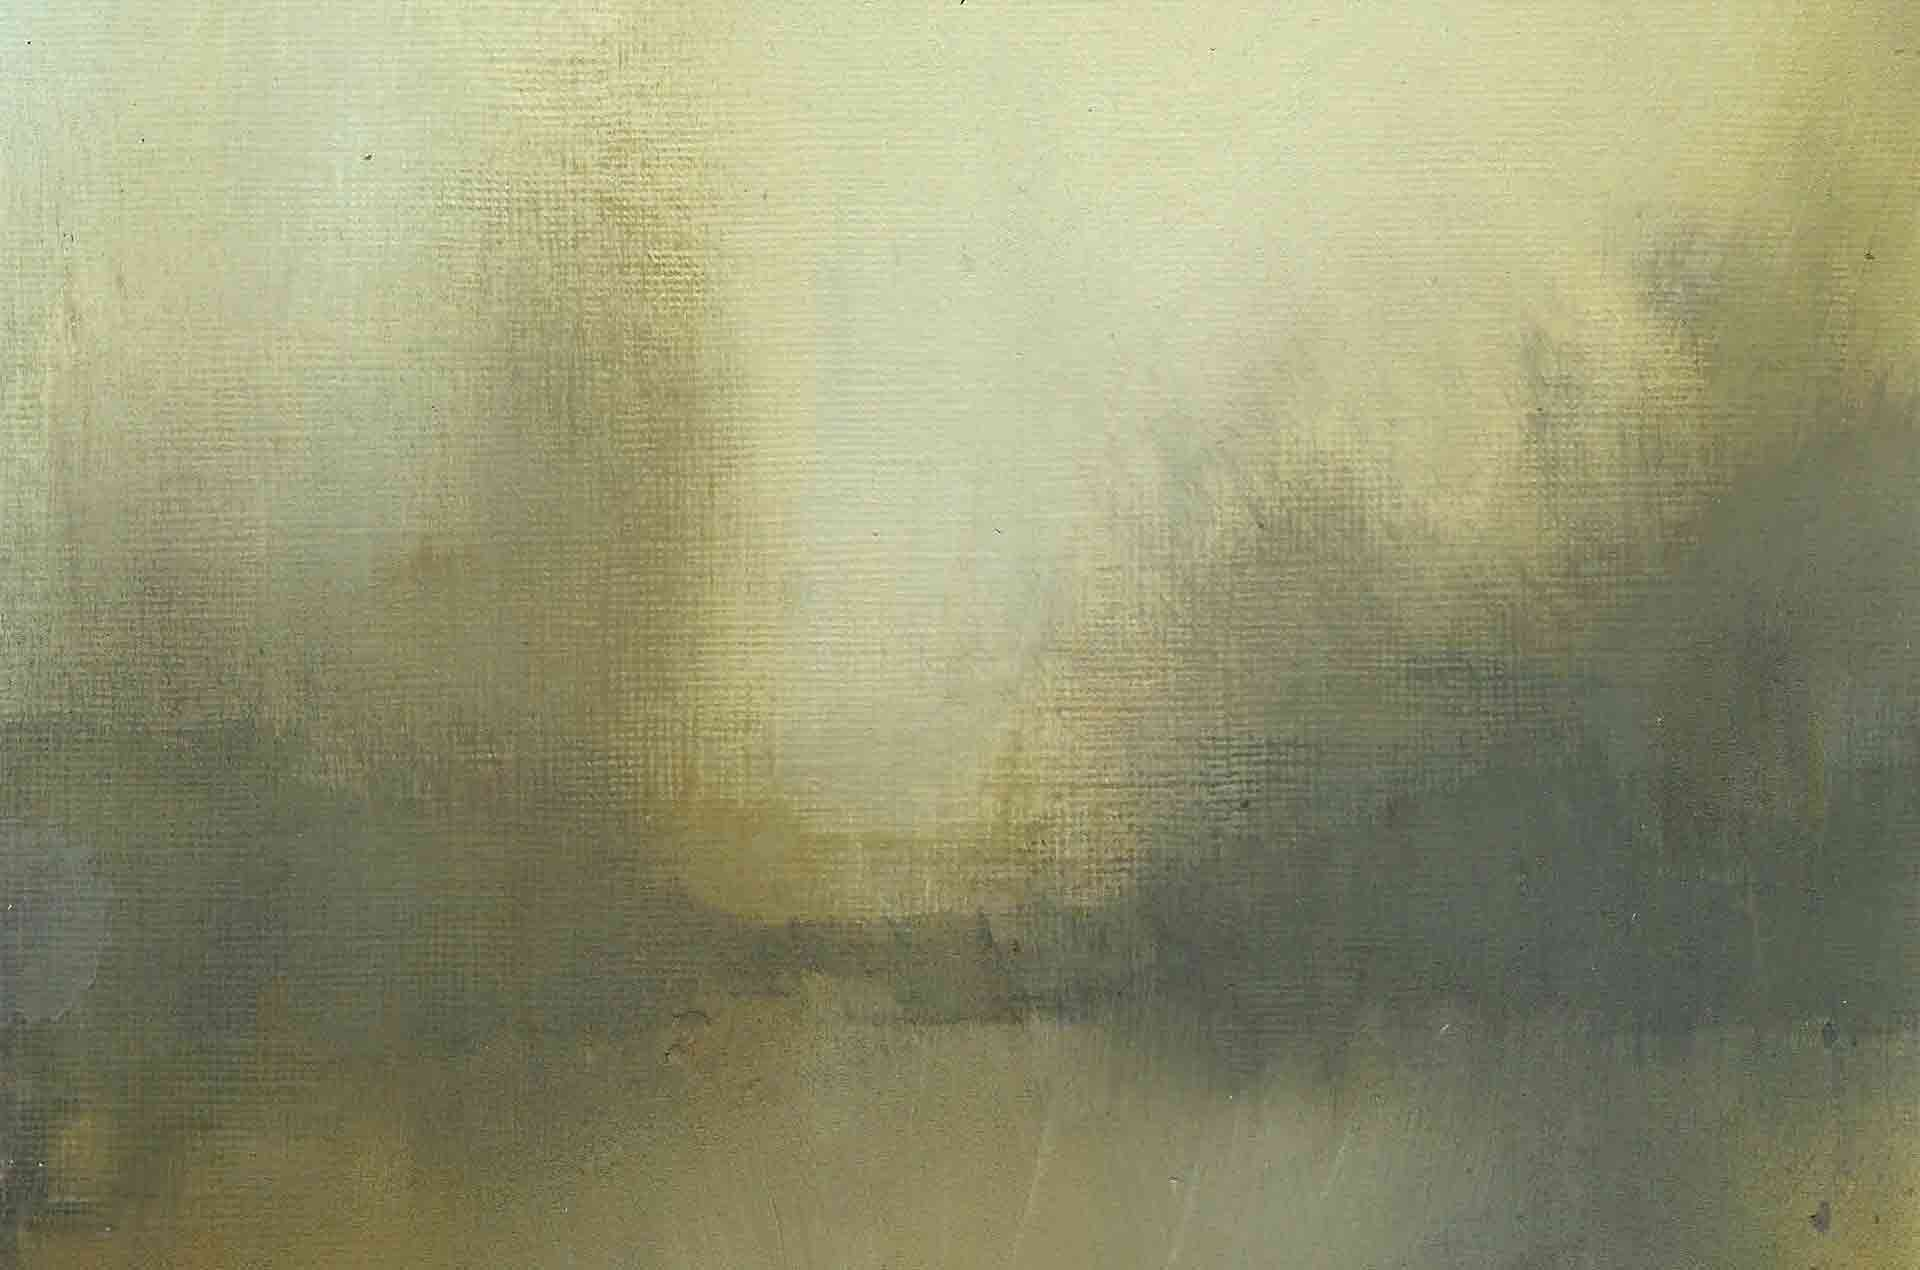 Victoria Orr Ewing's Studio Collection of Landscape Paintings